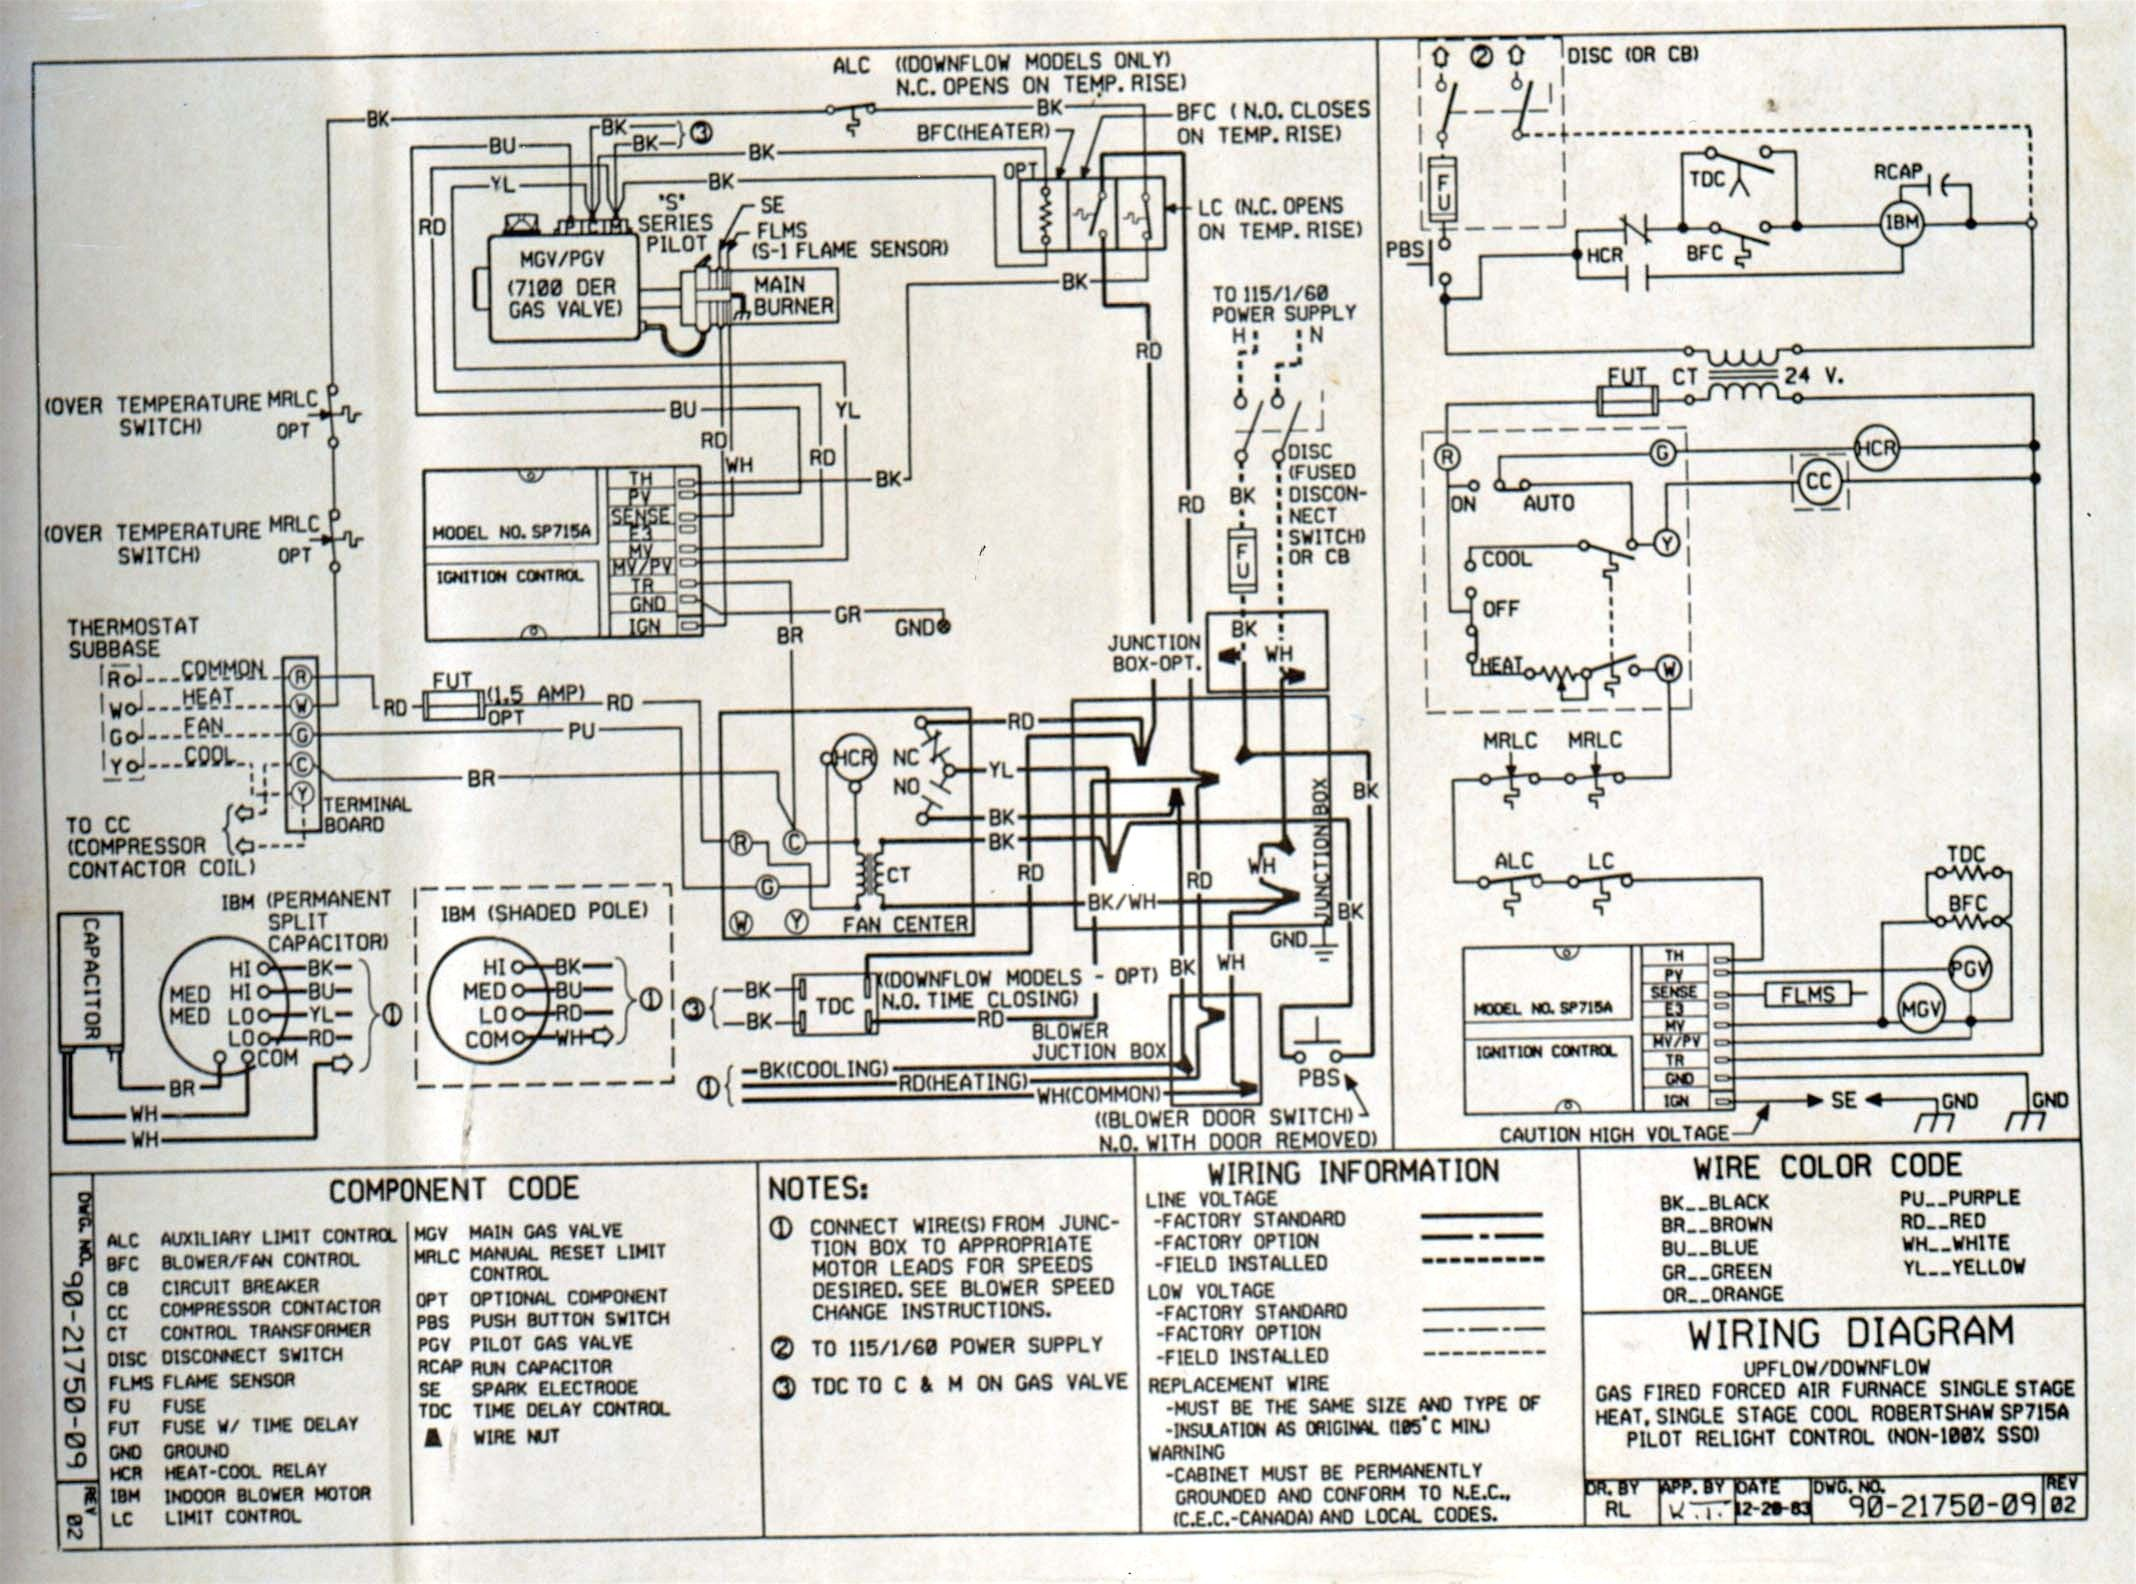 Power Flame Wiring Diagram - Wiring Diagrams Blogpalox-france.fr